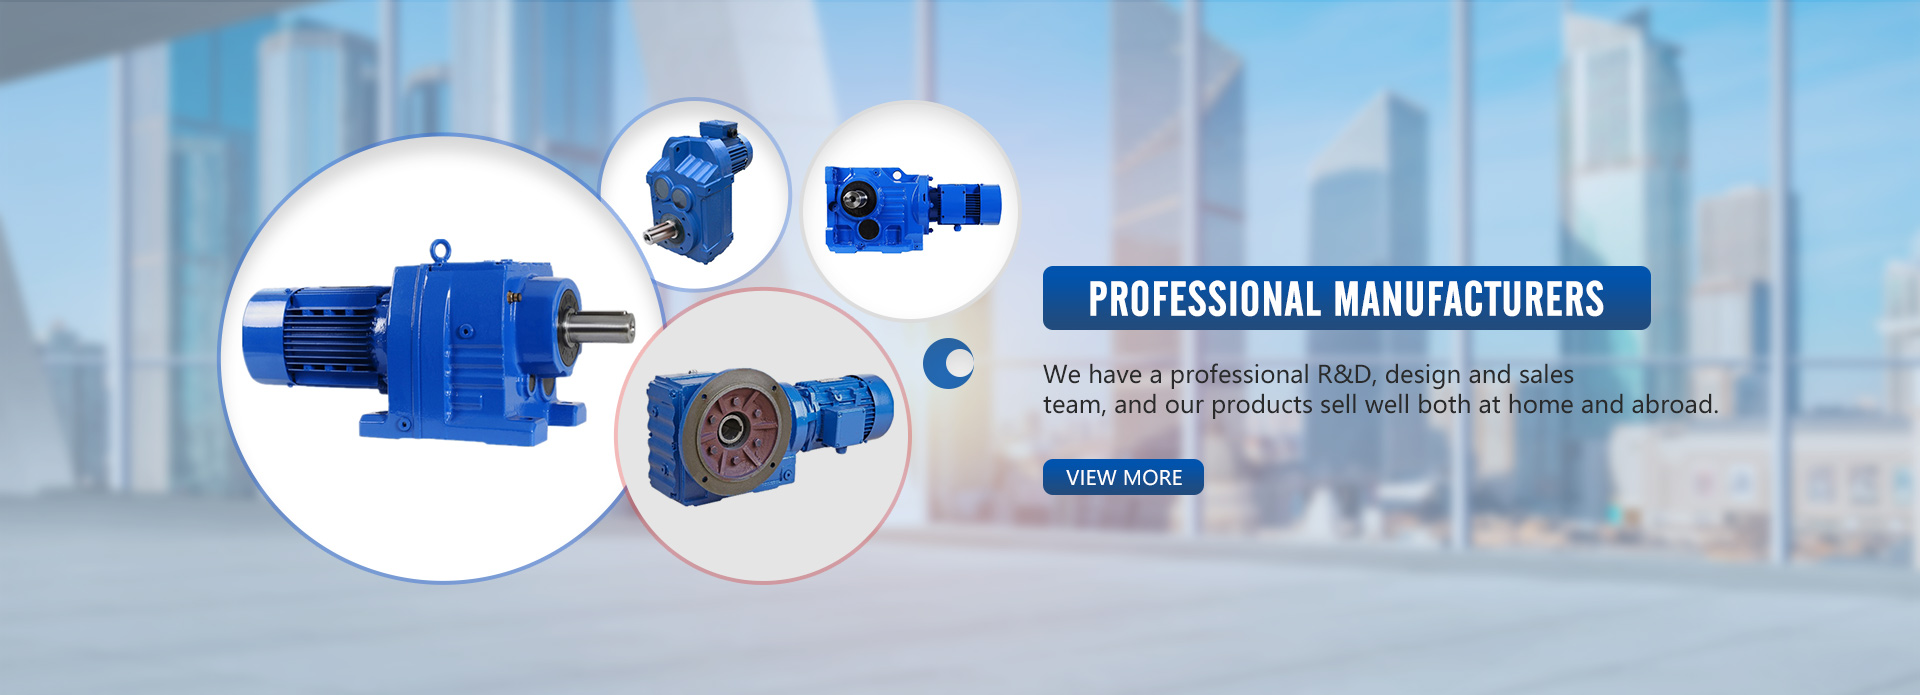 Manufacturers Professional